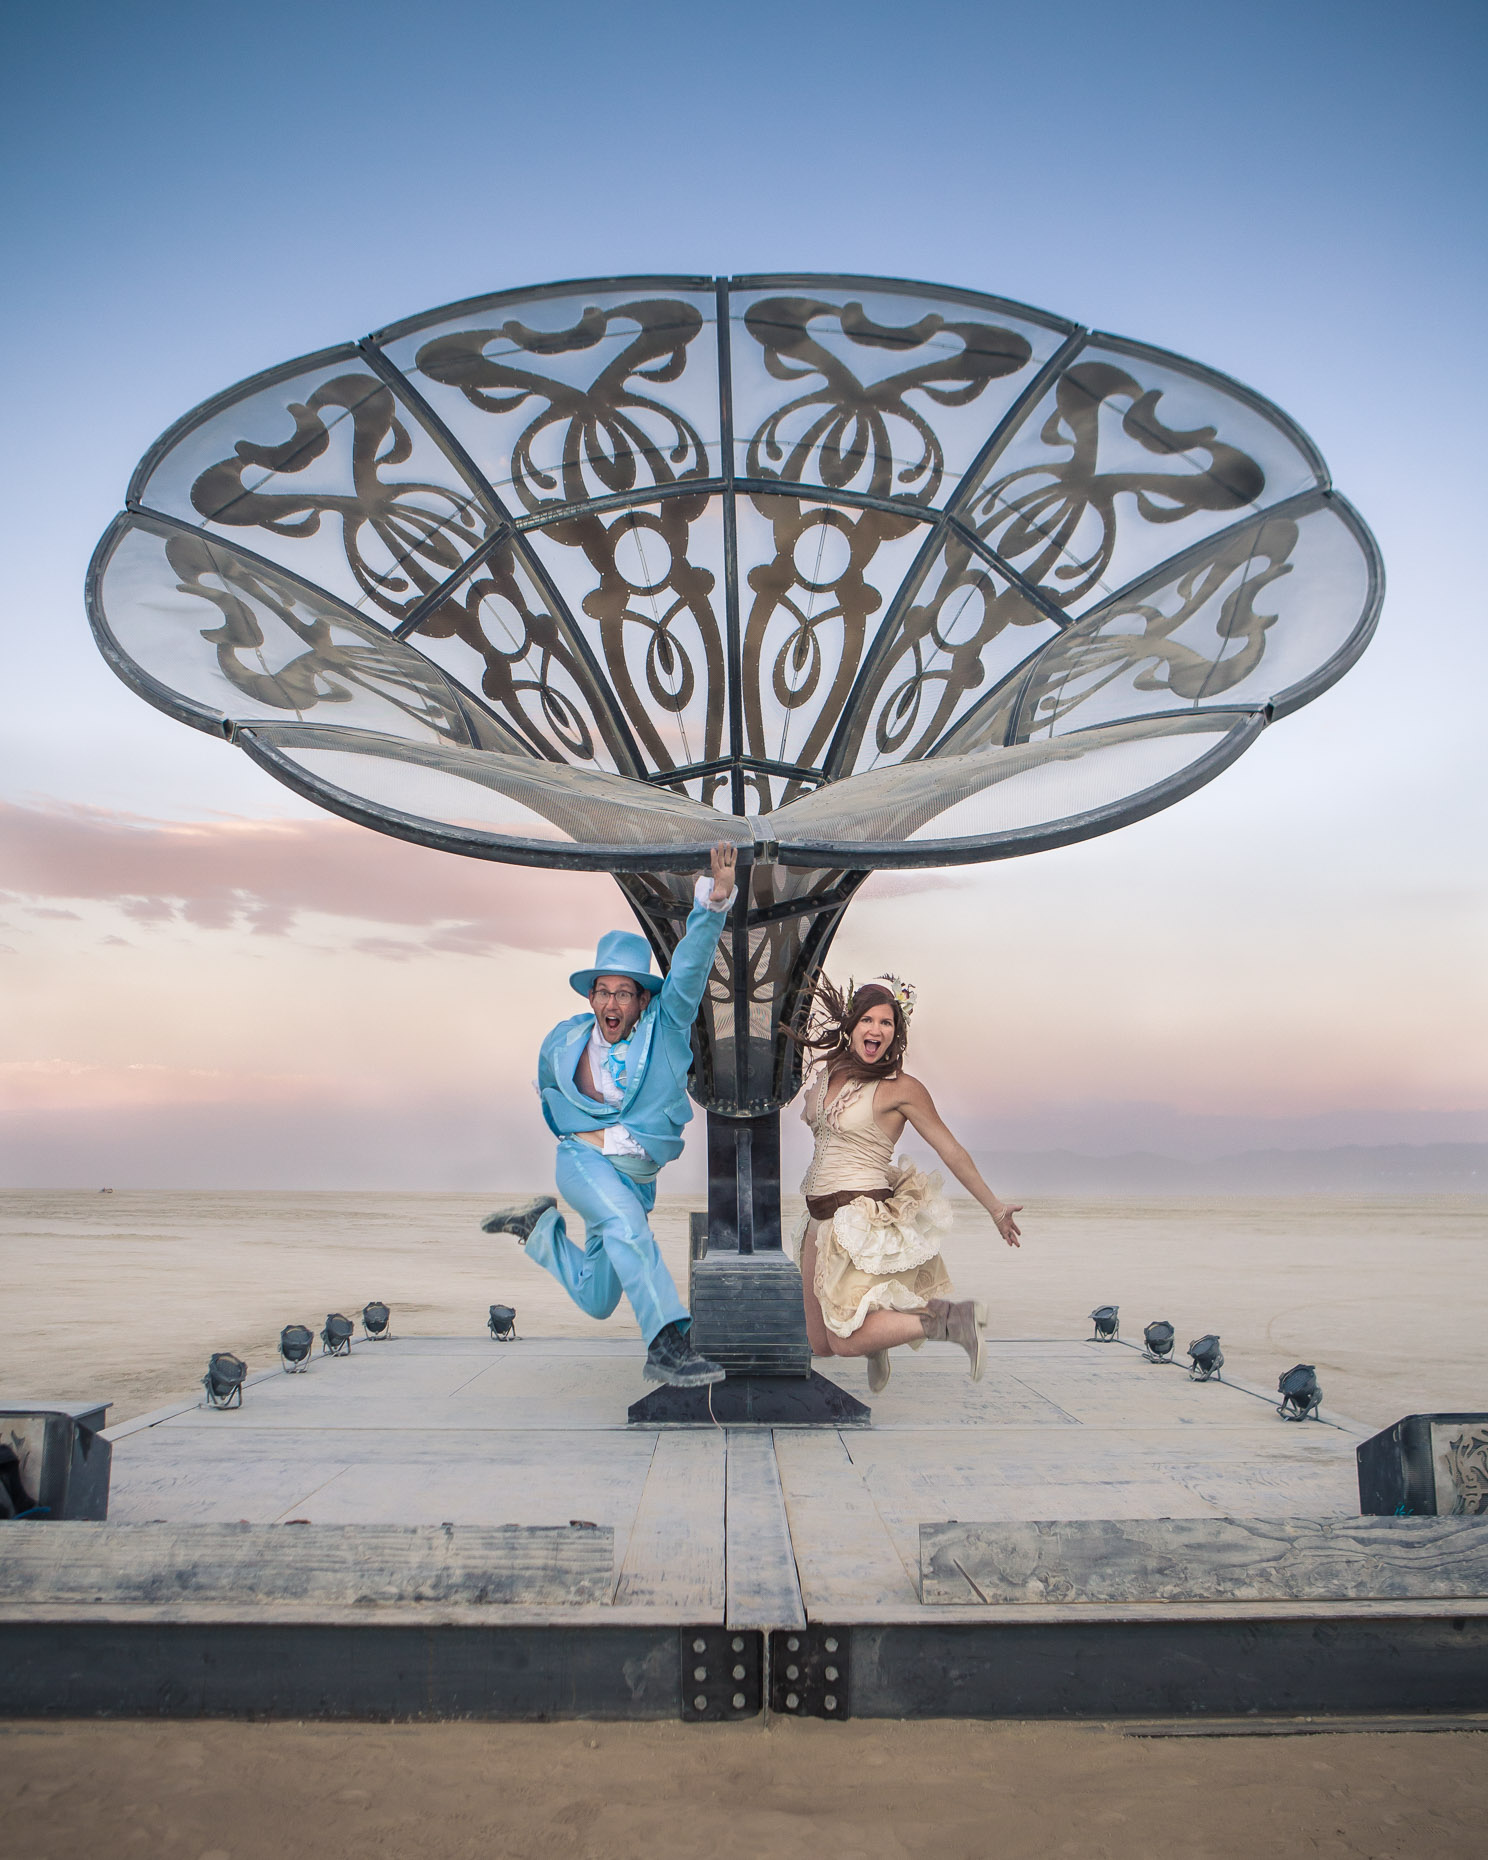 Couple jump in front of art sculpture at Burning Man